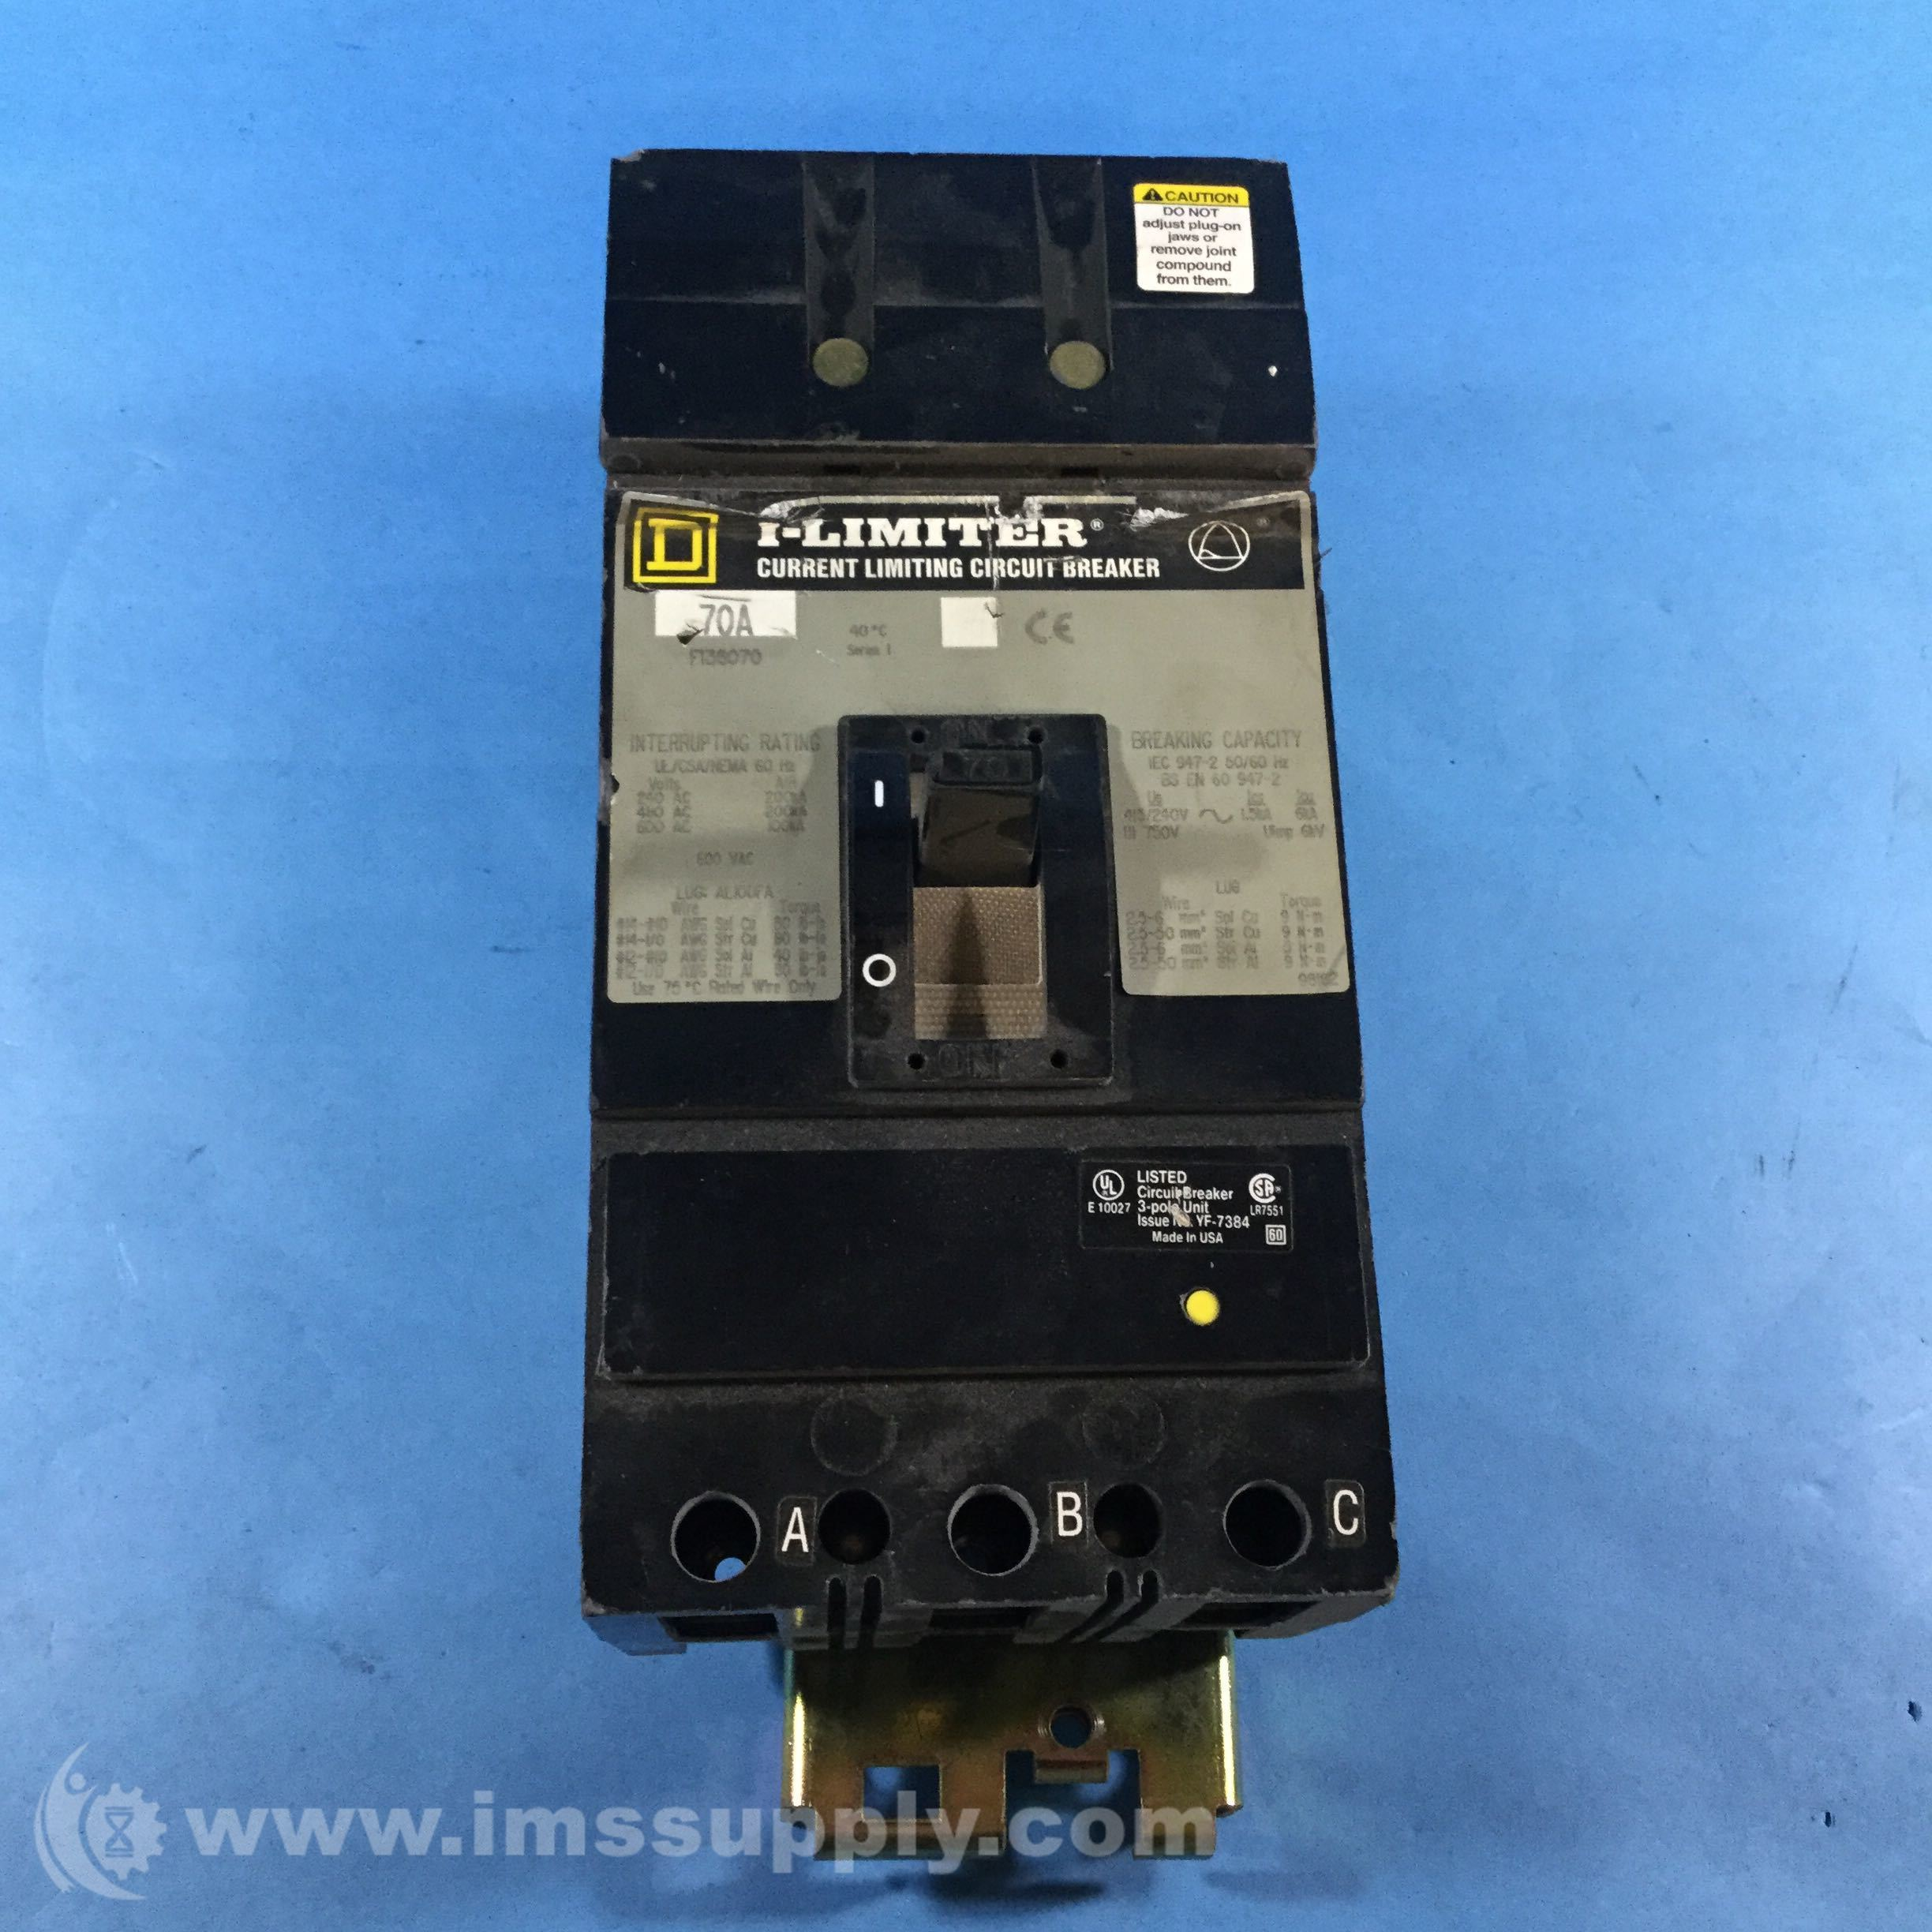 Square D Fi36070 I Limiter Current Limiting Circuit Breaker Ims Supply